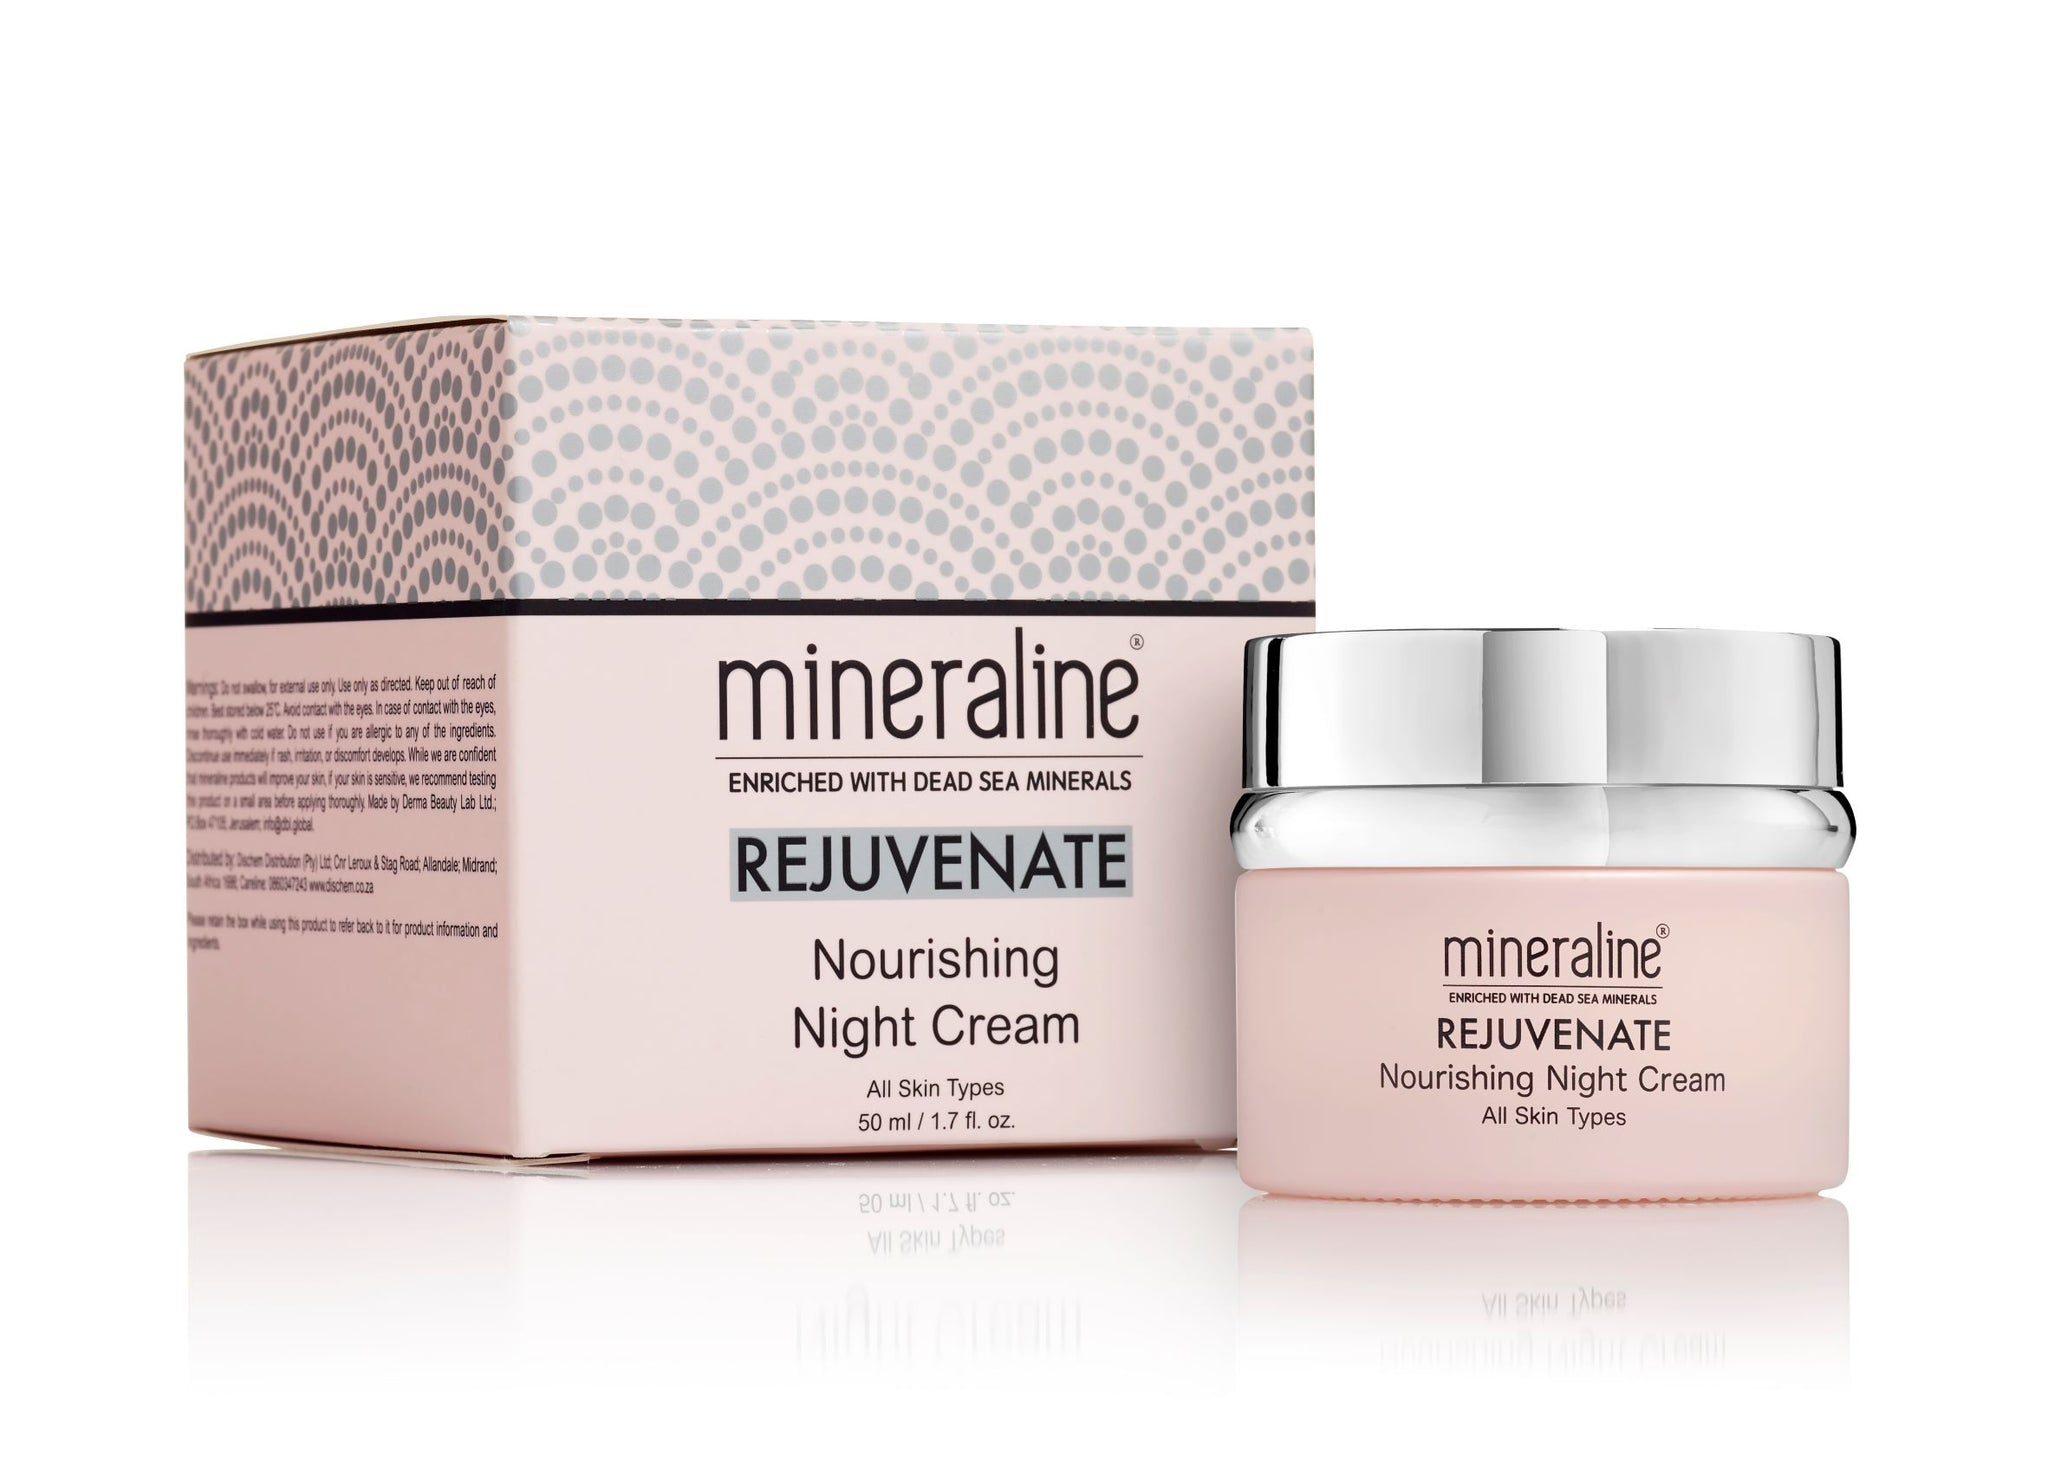 Rejuvenate - Nourishing Night Cream